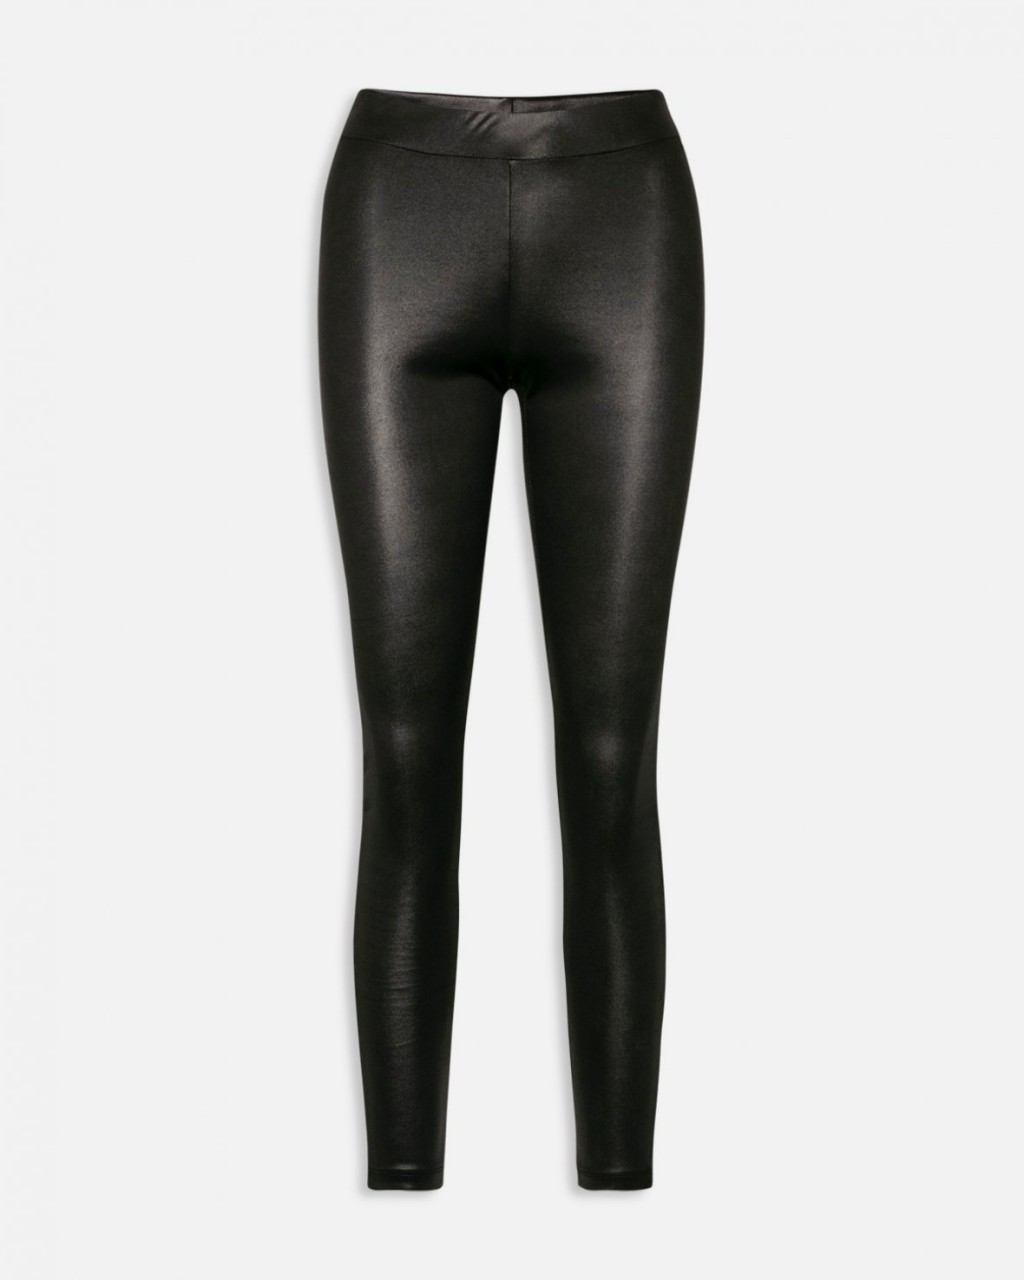 Hosen - Gam Leggings black  - Onlineshop Olden Mea